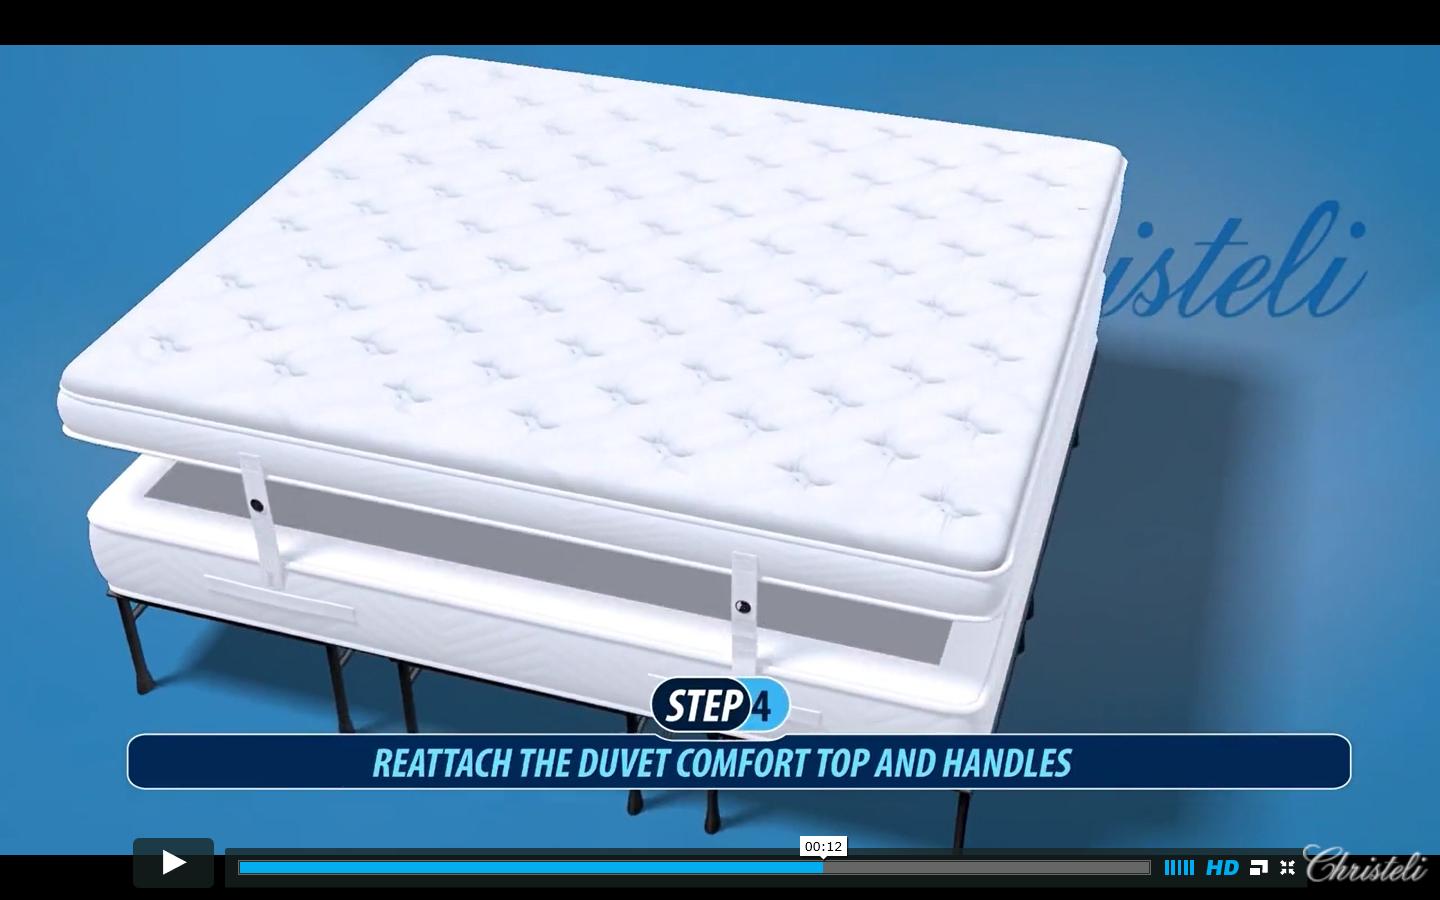 awesome protector inspirational reviews tuft mattress leesa of christeli casper vs